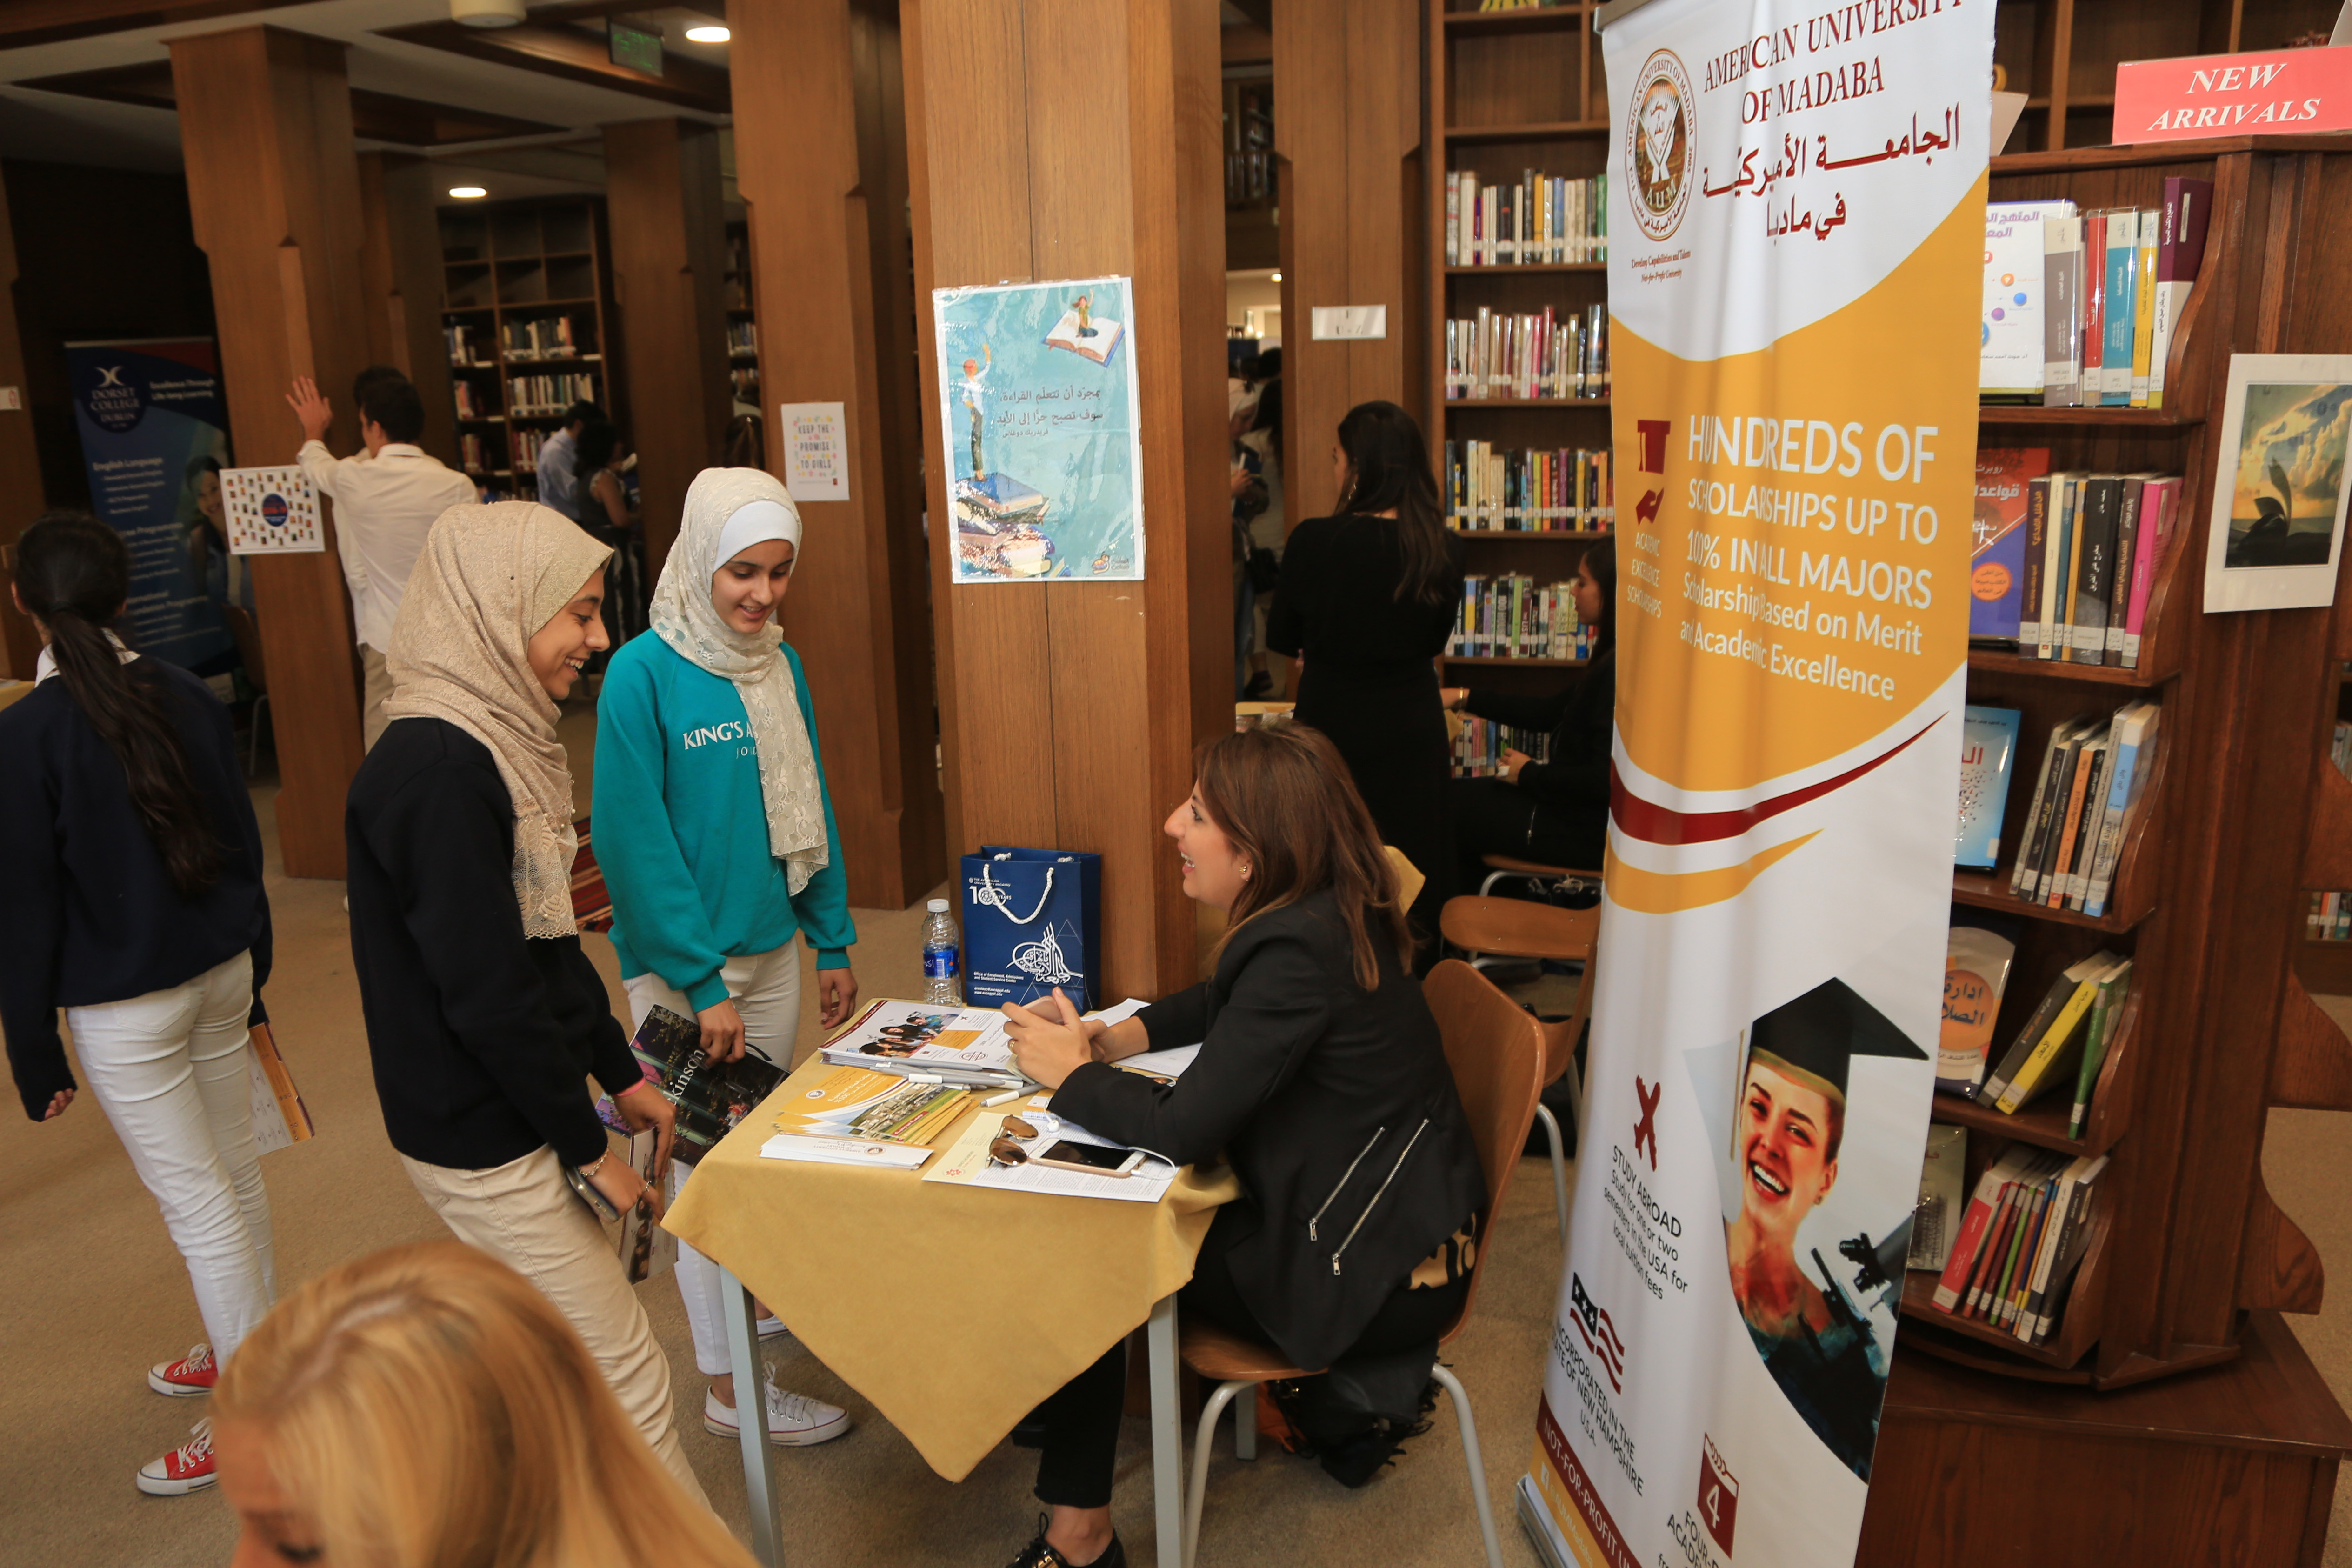 More than 100 students attend university fair